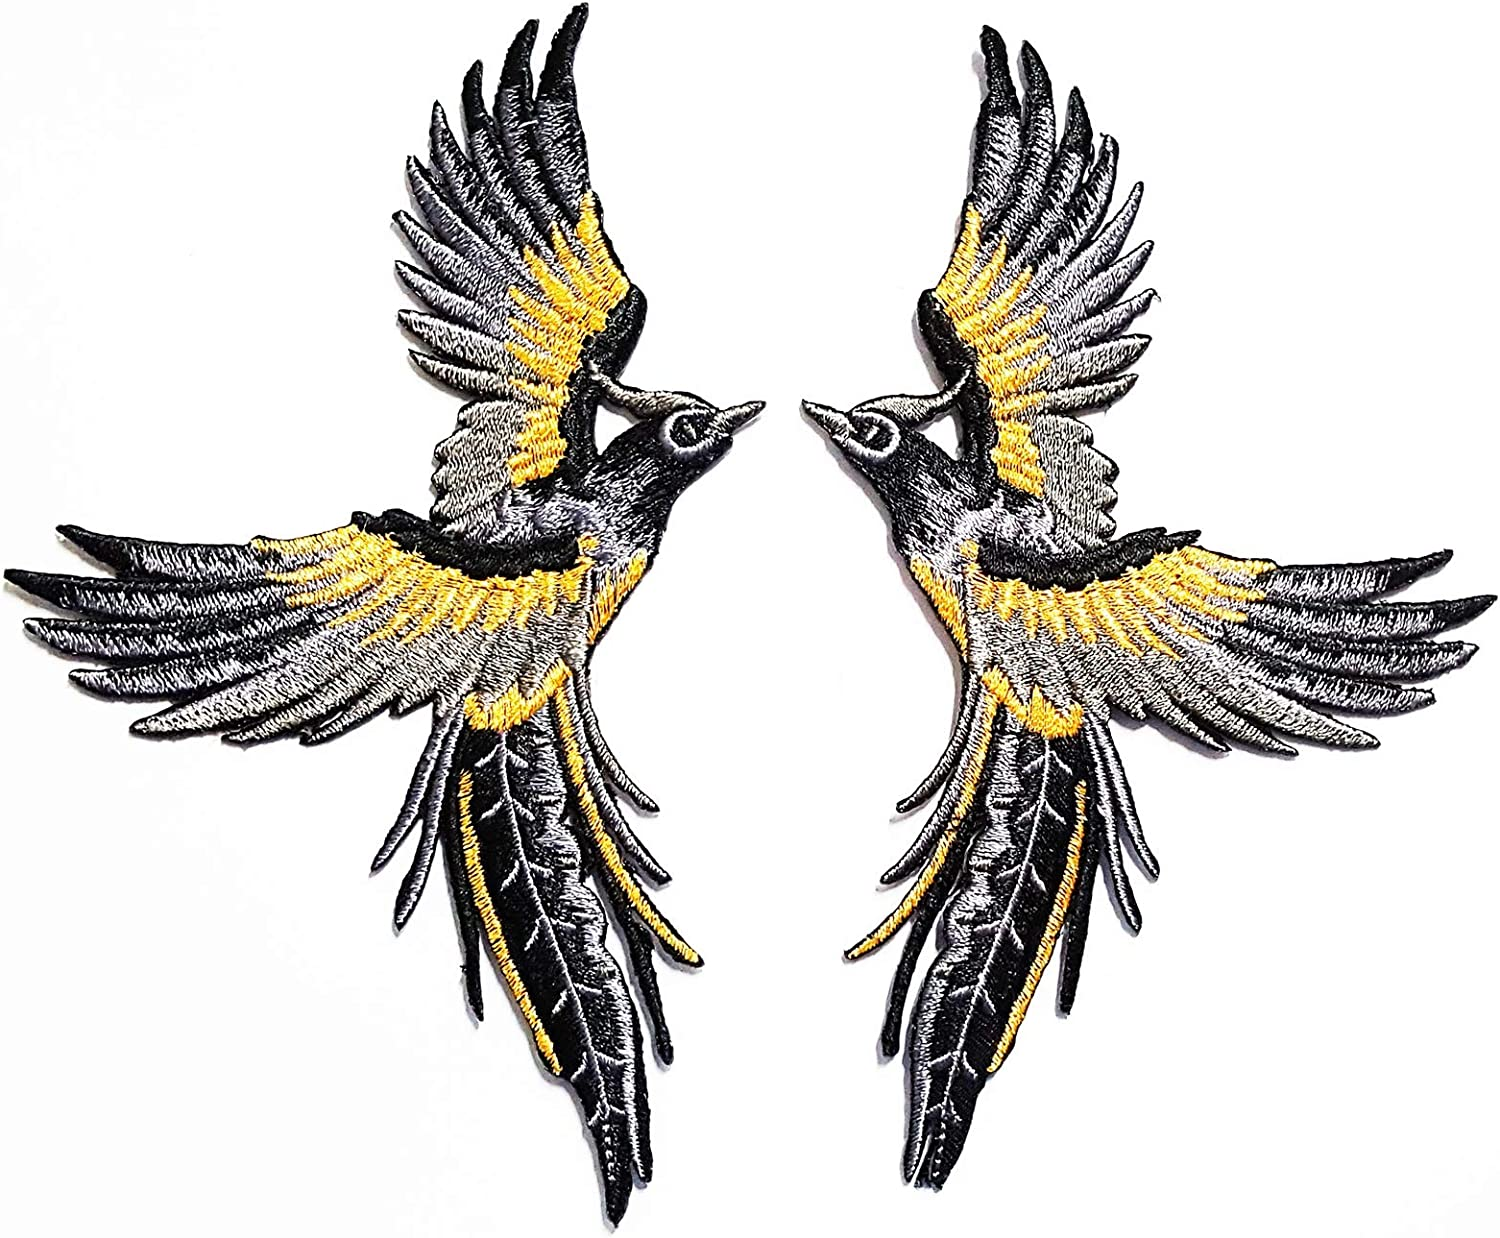 Nipitshop Patches Set Phoenix Phenix Birds Gray Black Embroidered Appliques Iron-on Patches for Clothes Backpacks T-Shirt Jeans Skirt Vests Scarf Hat Bag